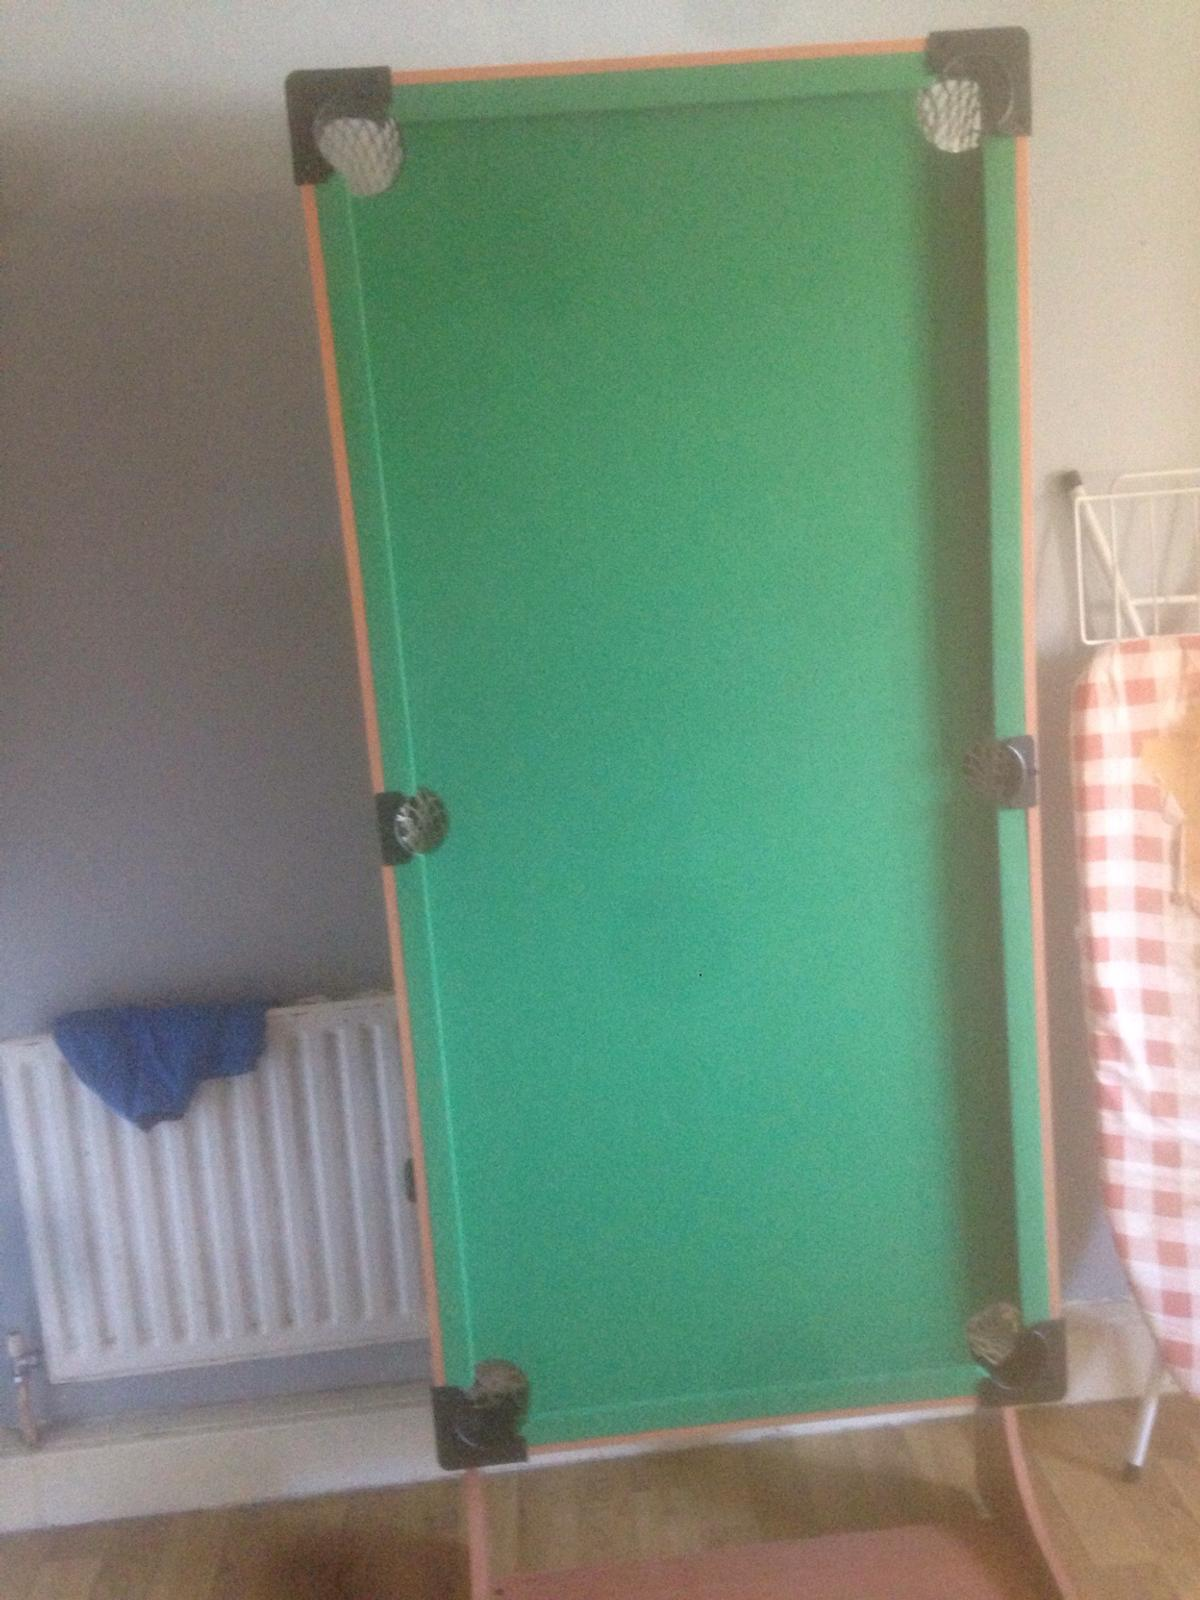 - 5ft Folding Pool Table In LS11 Leeds For £45.00 For Sale Shpock